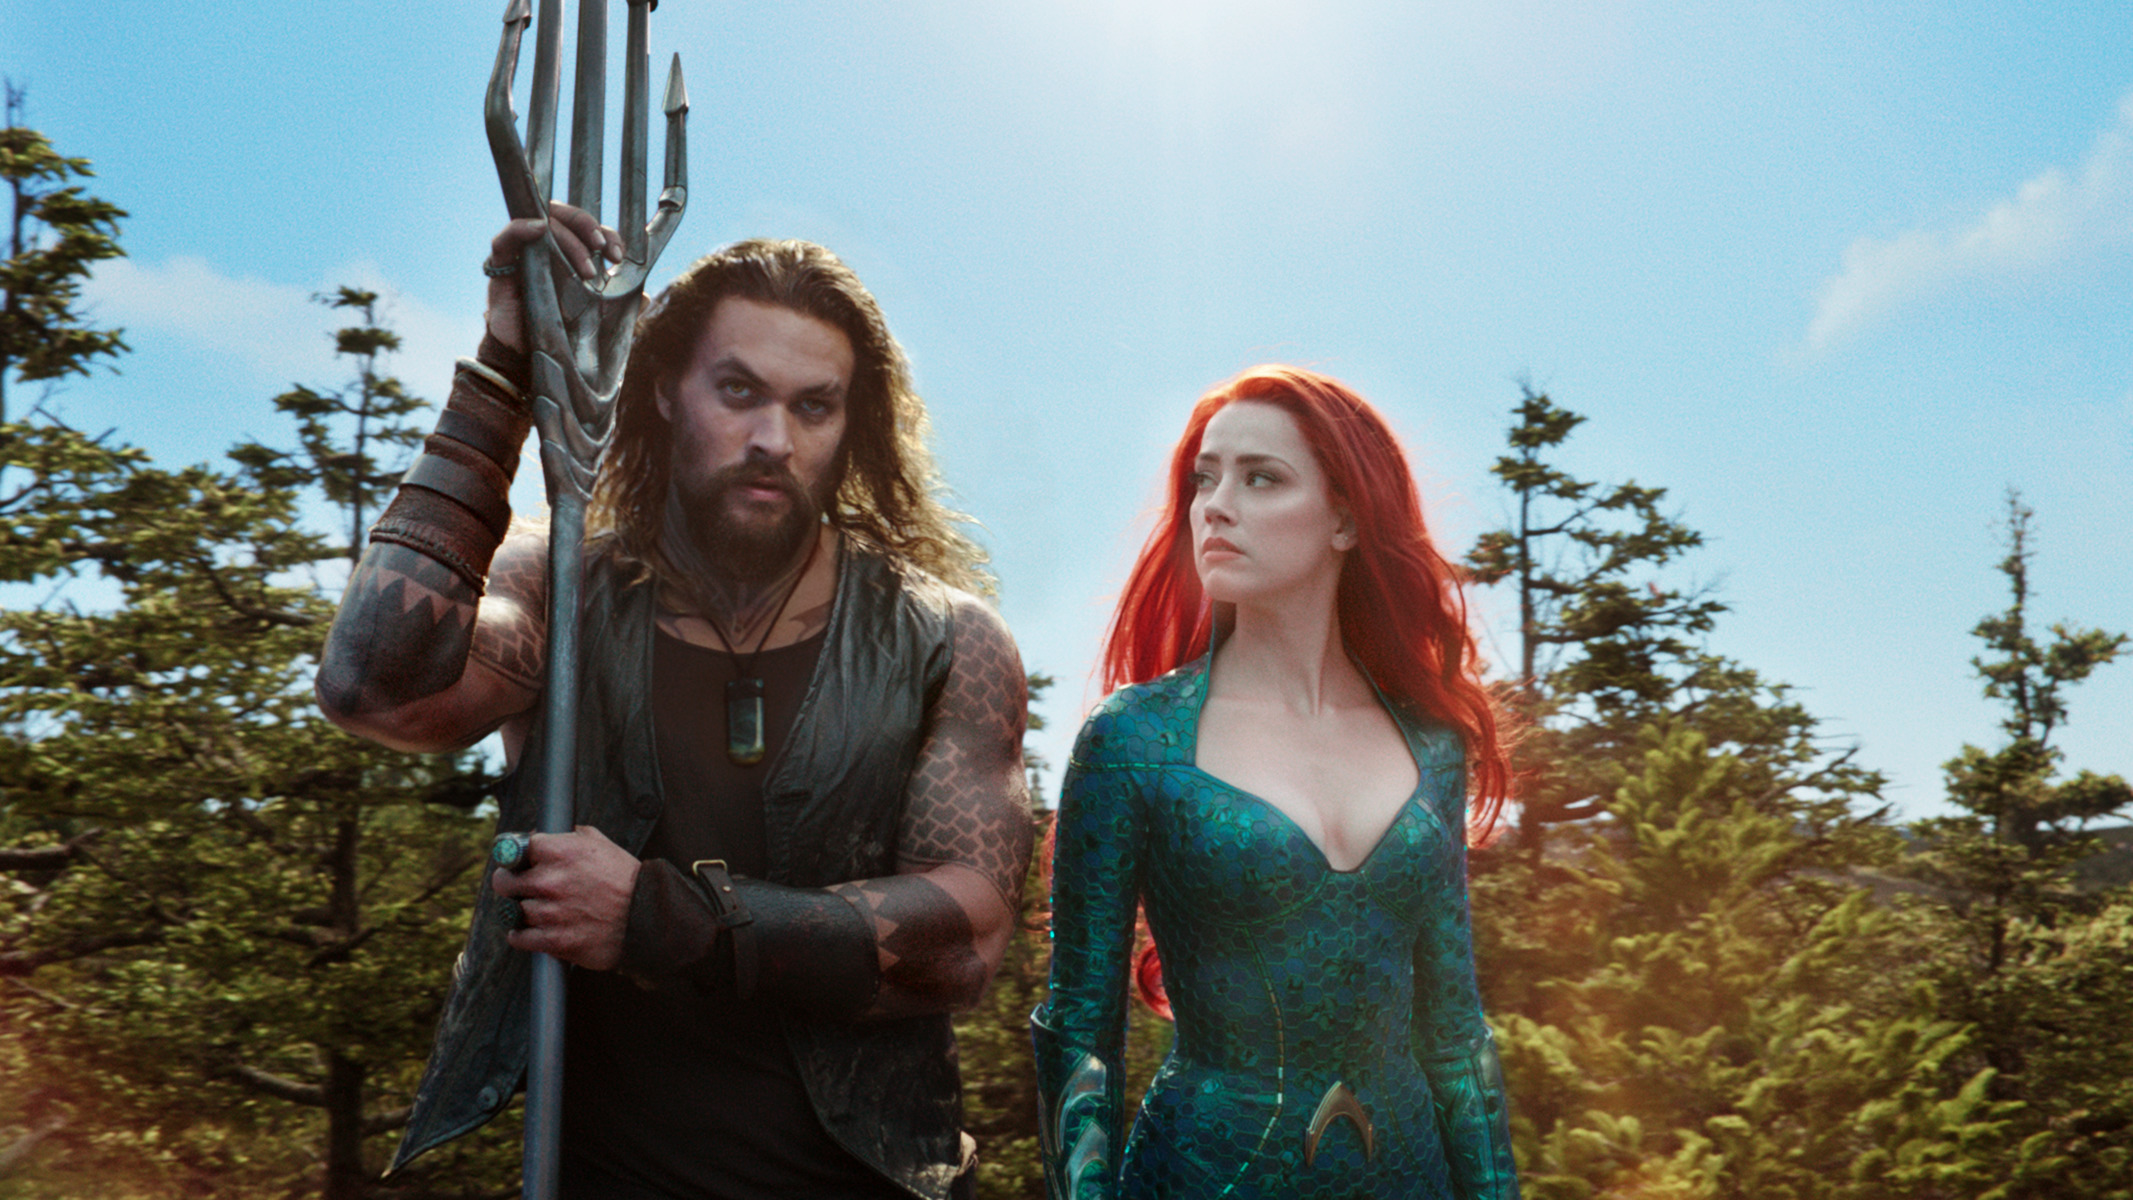 Jason Mamoa leaning on his trident and Amber Heard looking intently to him on the left in the movie Aquaman